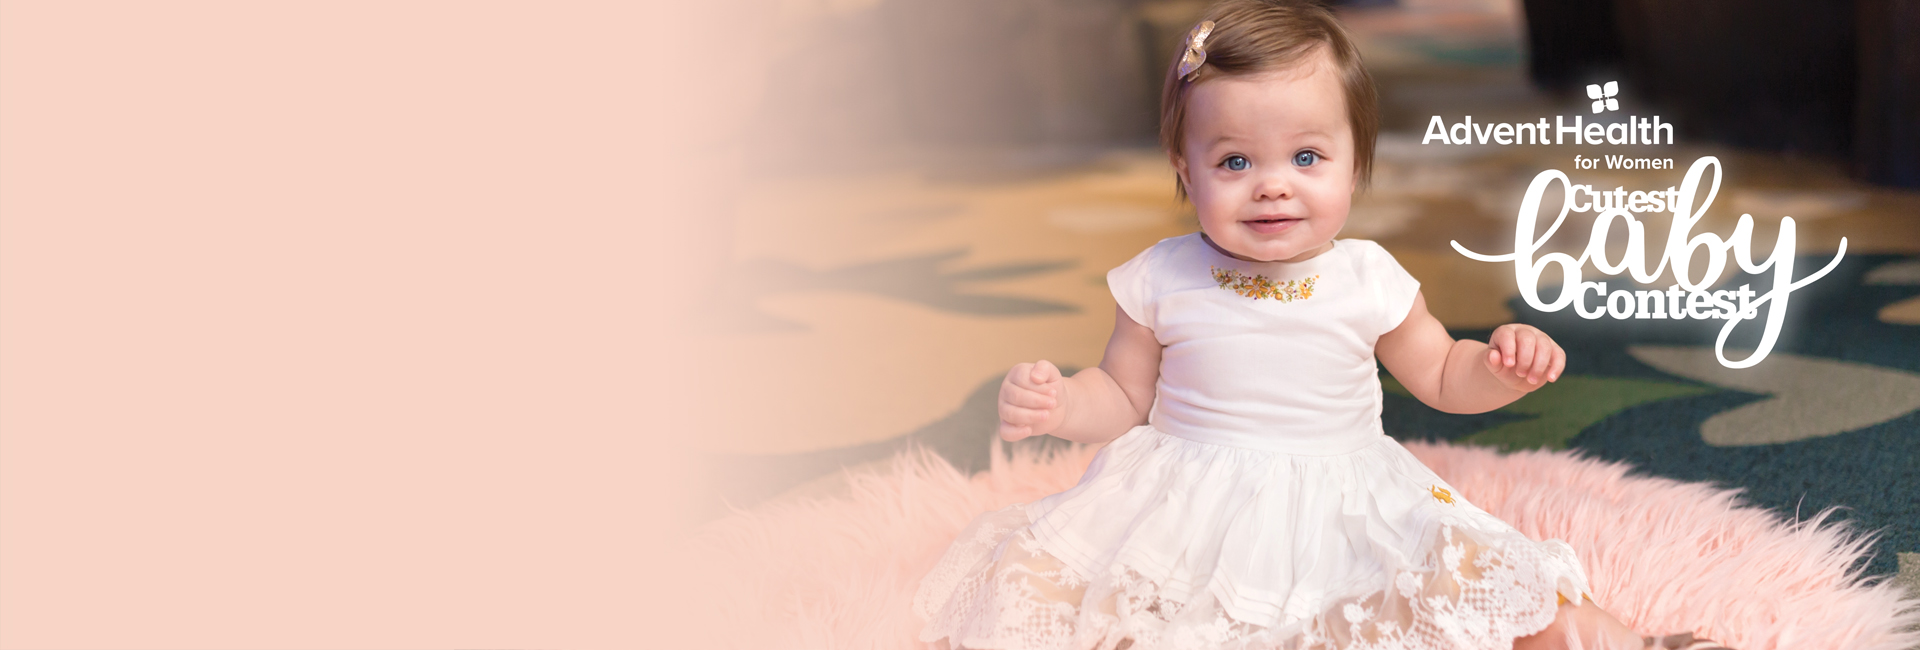 AdventHealth for Women Cutest Baby Contest